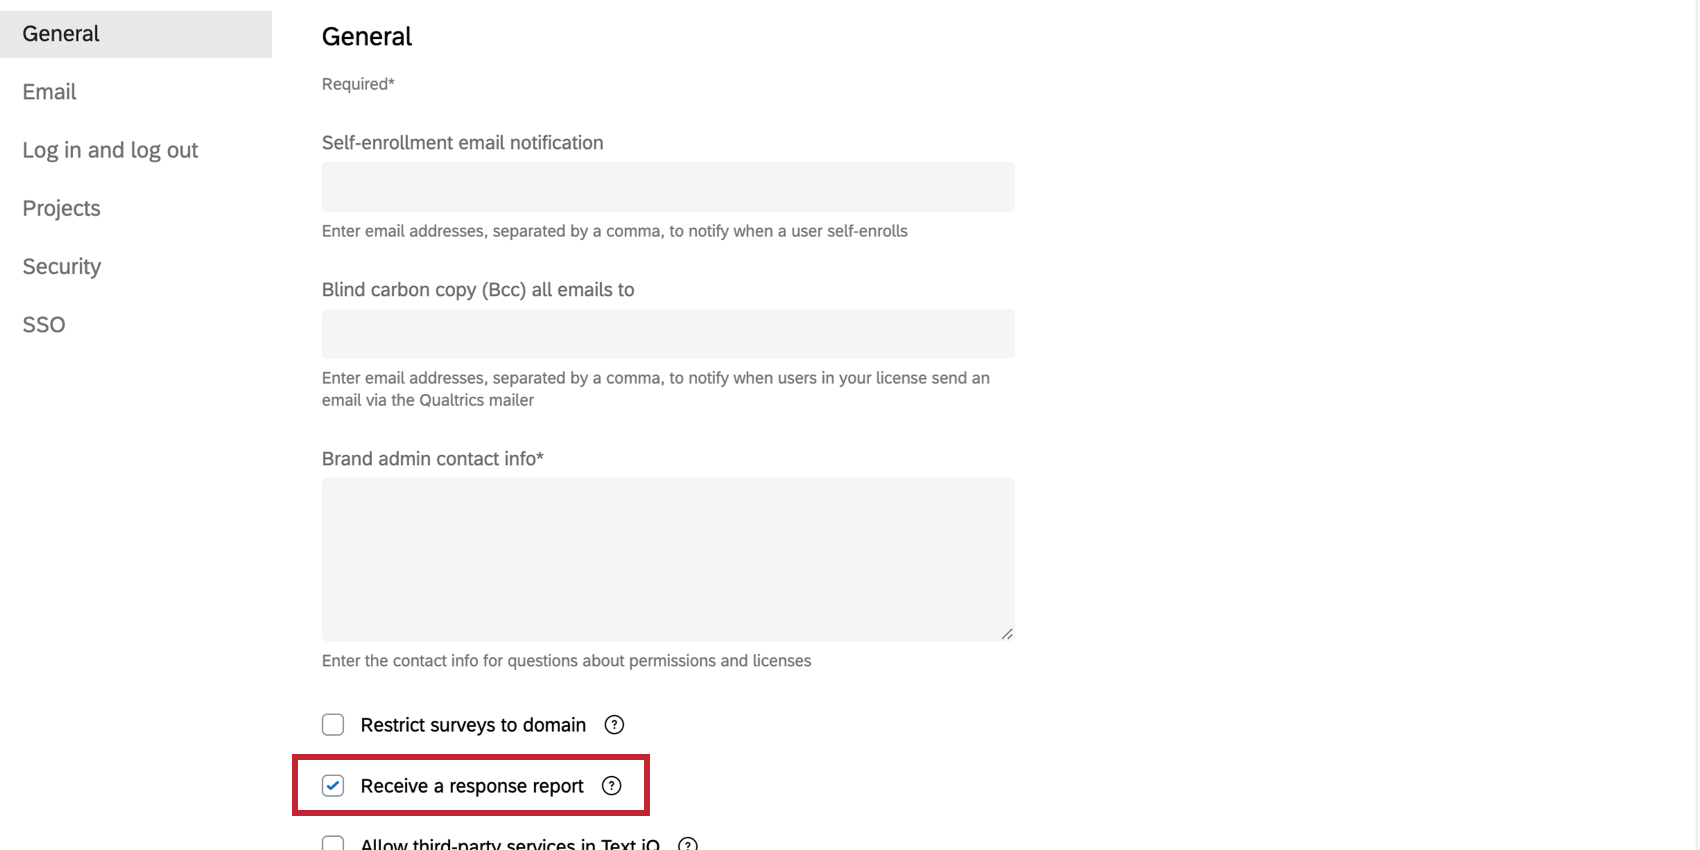 Allow Response Reports option in the General settings